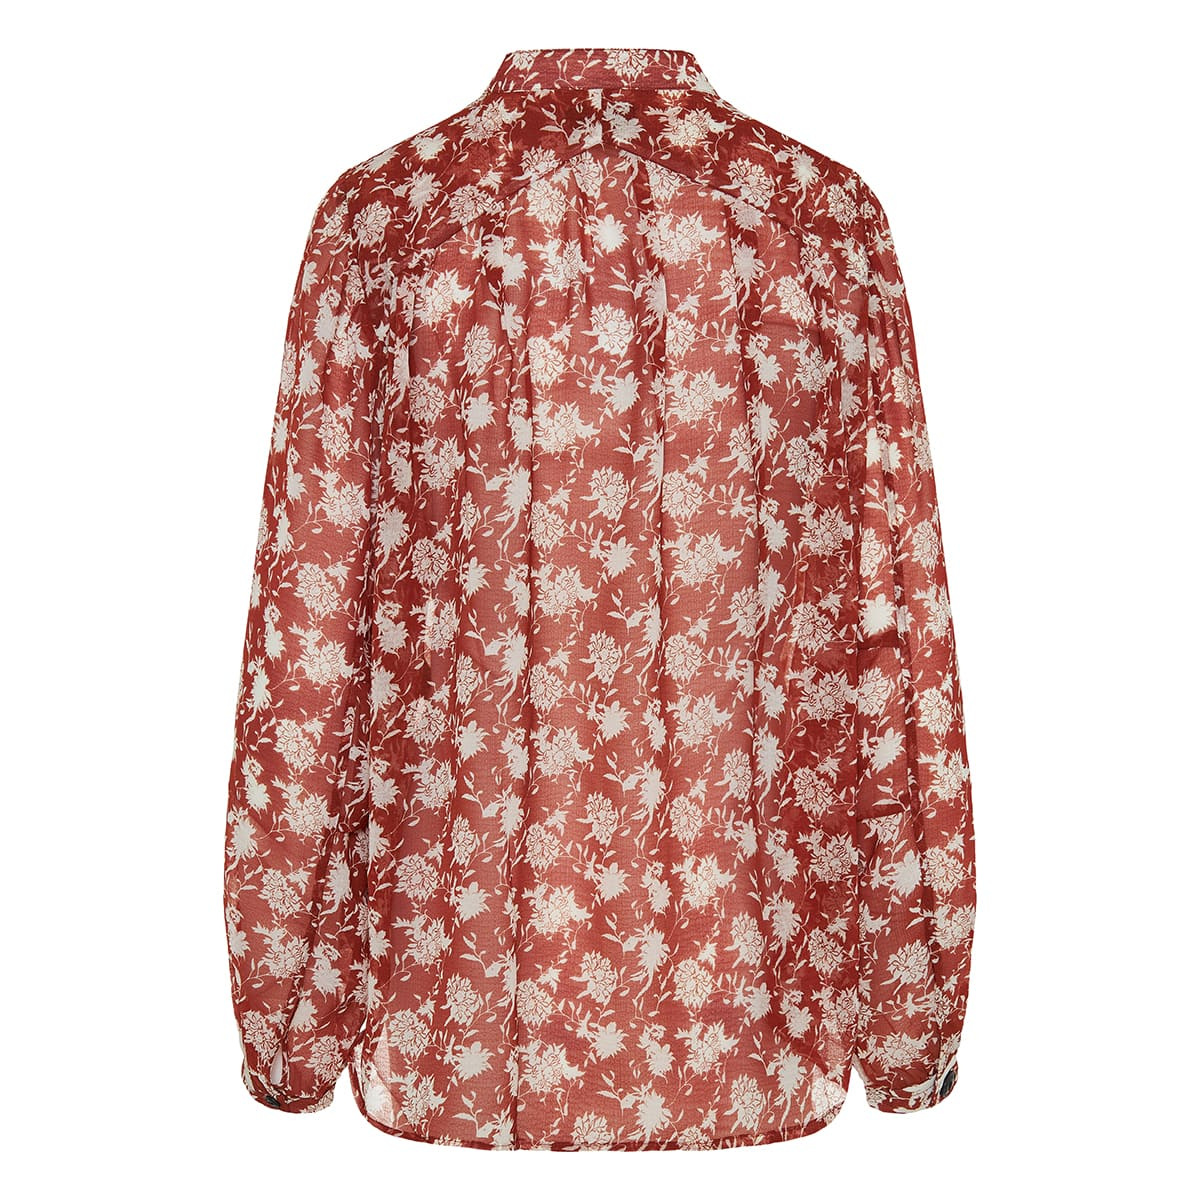 Carly floral shirt